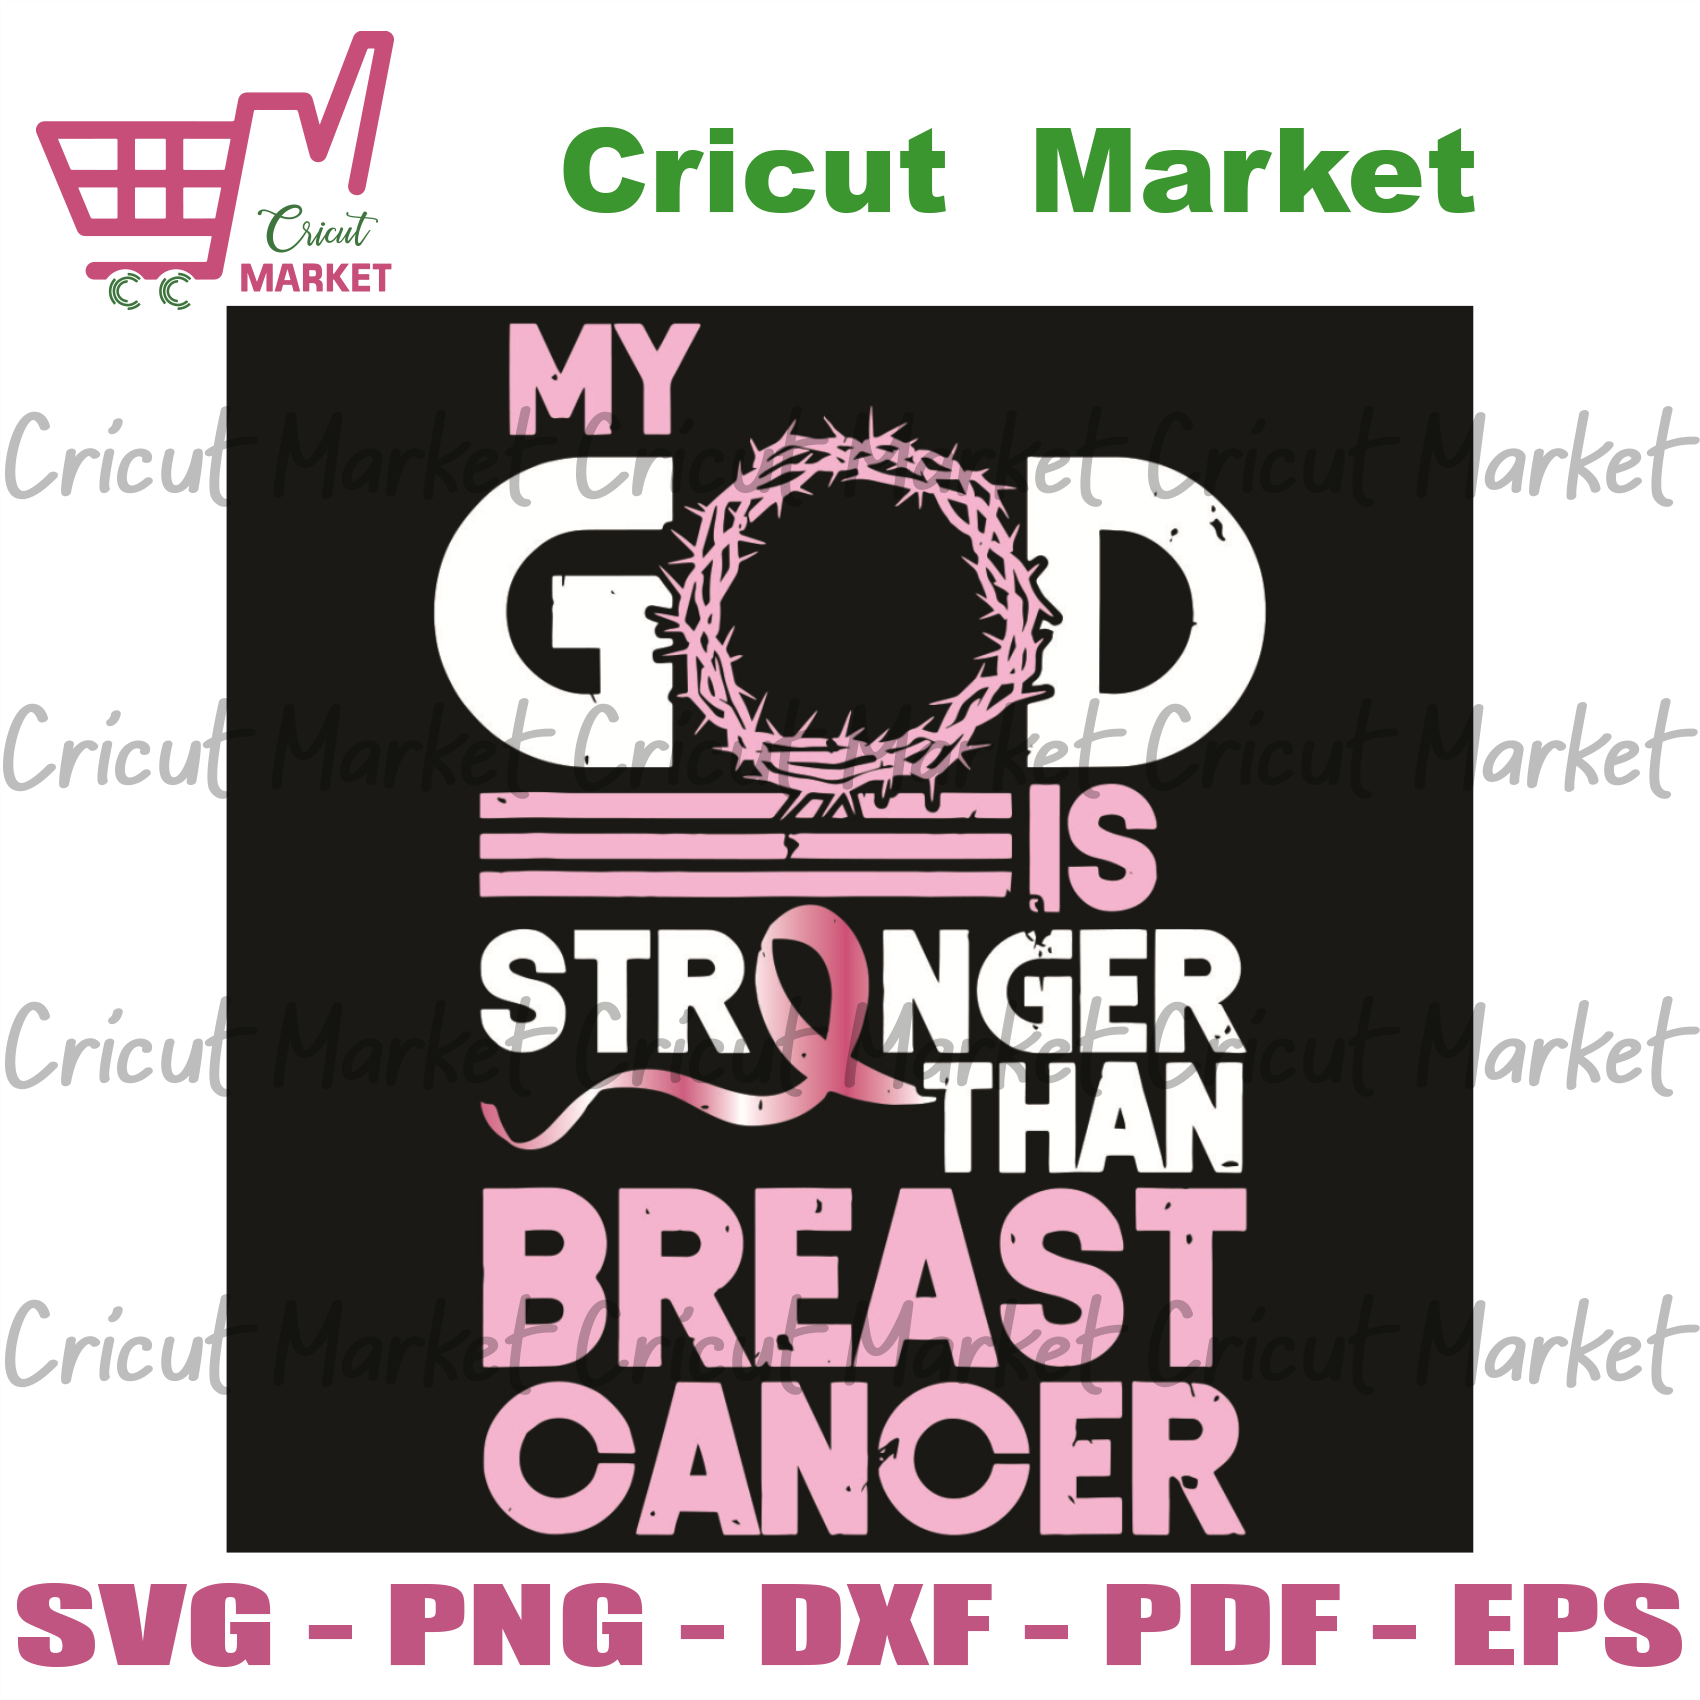 My God Is Stronger Than Breast Cancer Svg, Trending Svg, My God Svg, Stronger Svg, Breast Cancer Svg, Best Cancer Awareness Svg, Cancer Svg, Breast Cancer Gift, Funny Cancer Gift, Cancer Surv